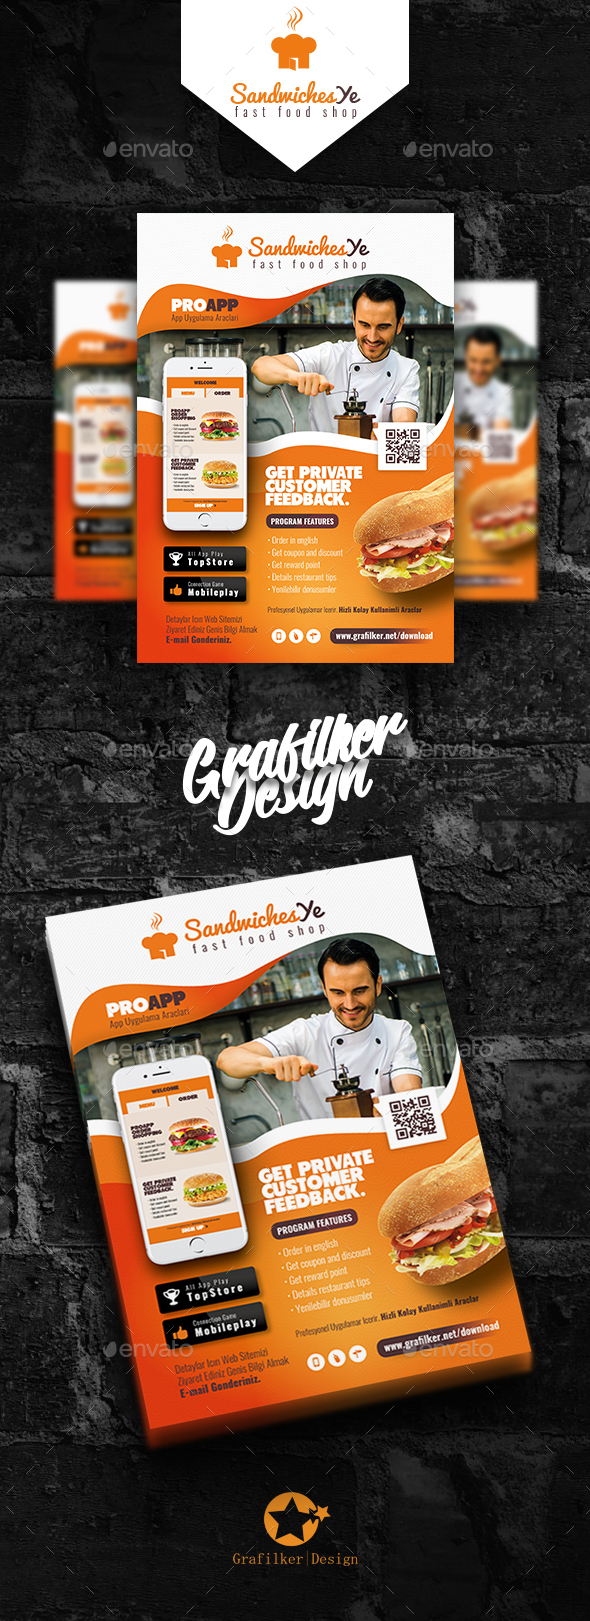 Mobile App Flyer Templates - Corporate Flyers